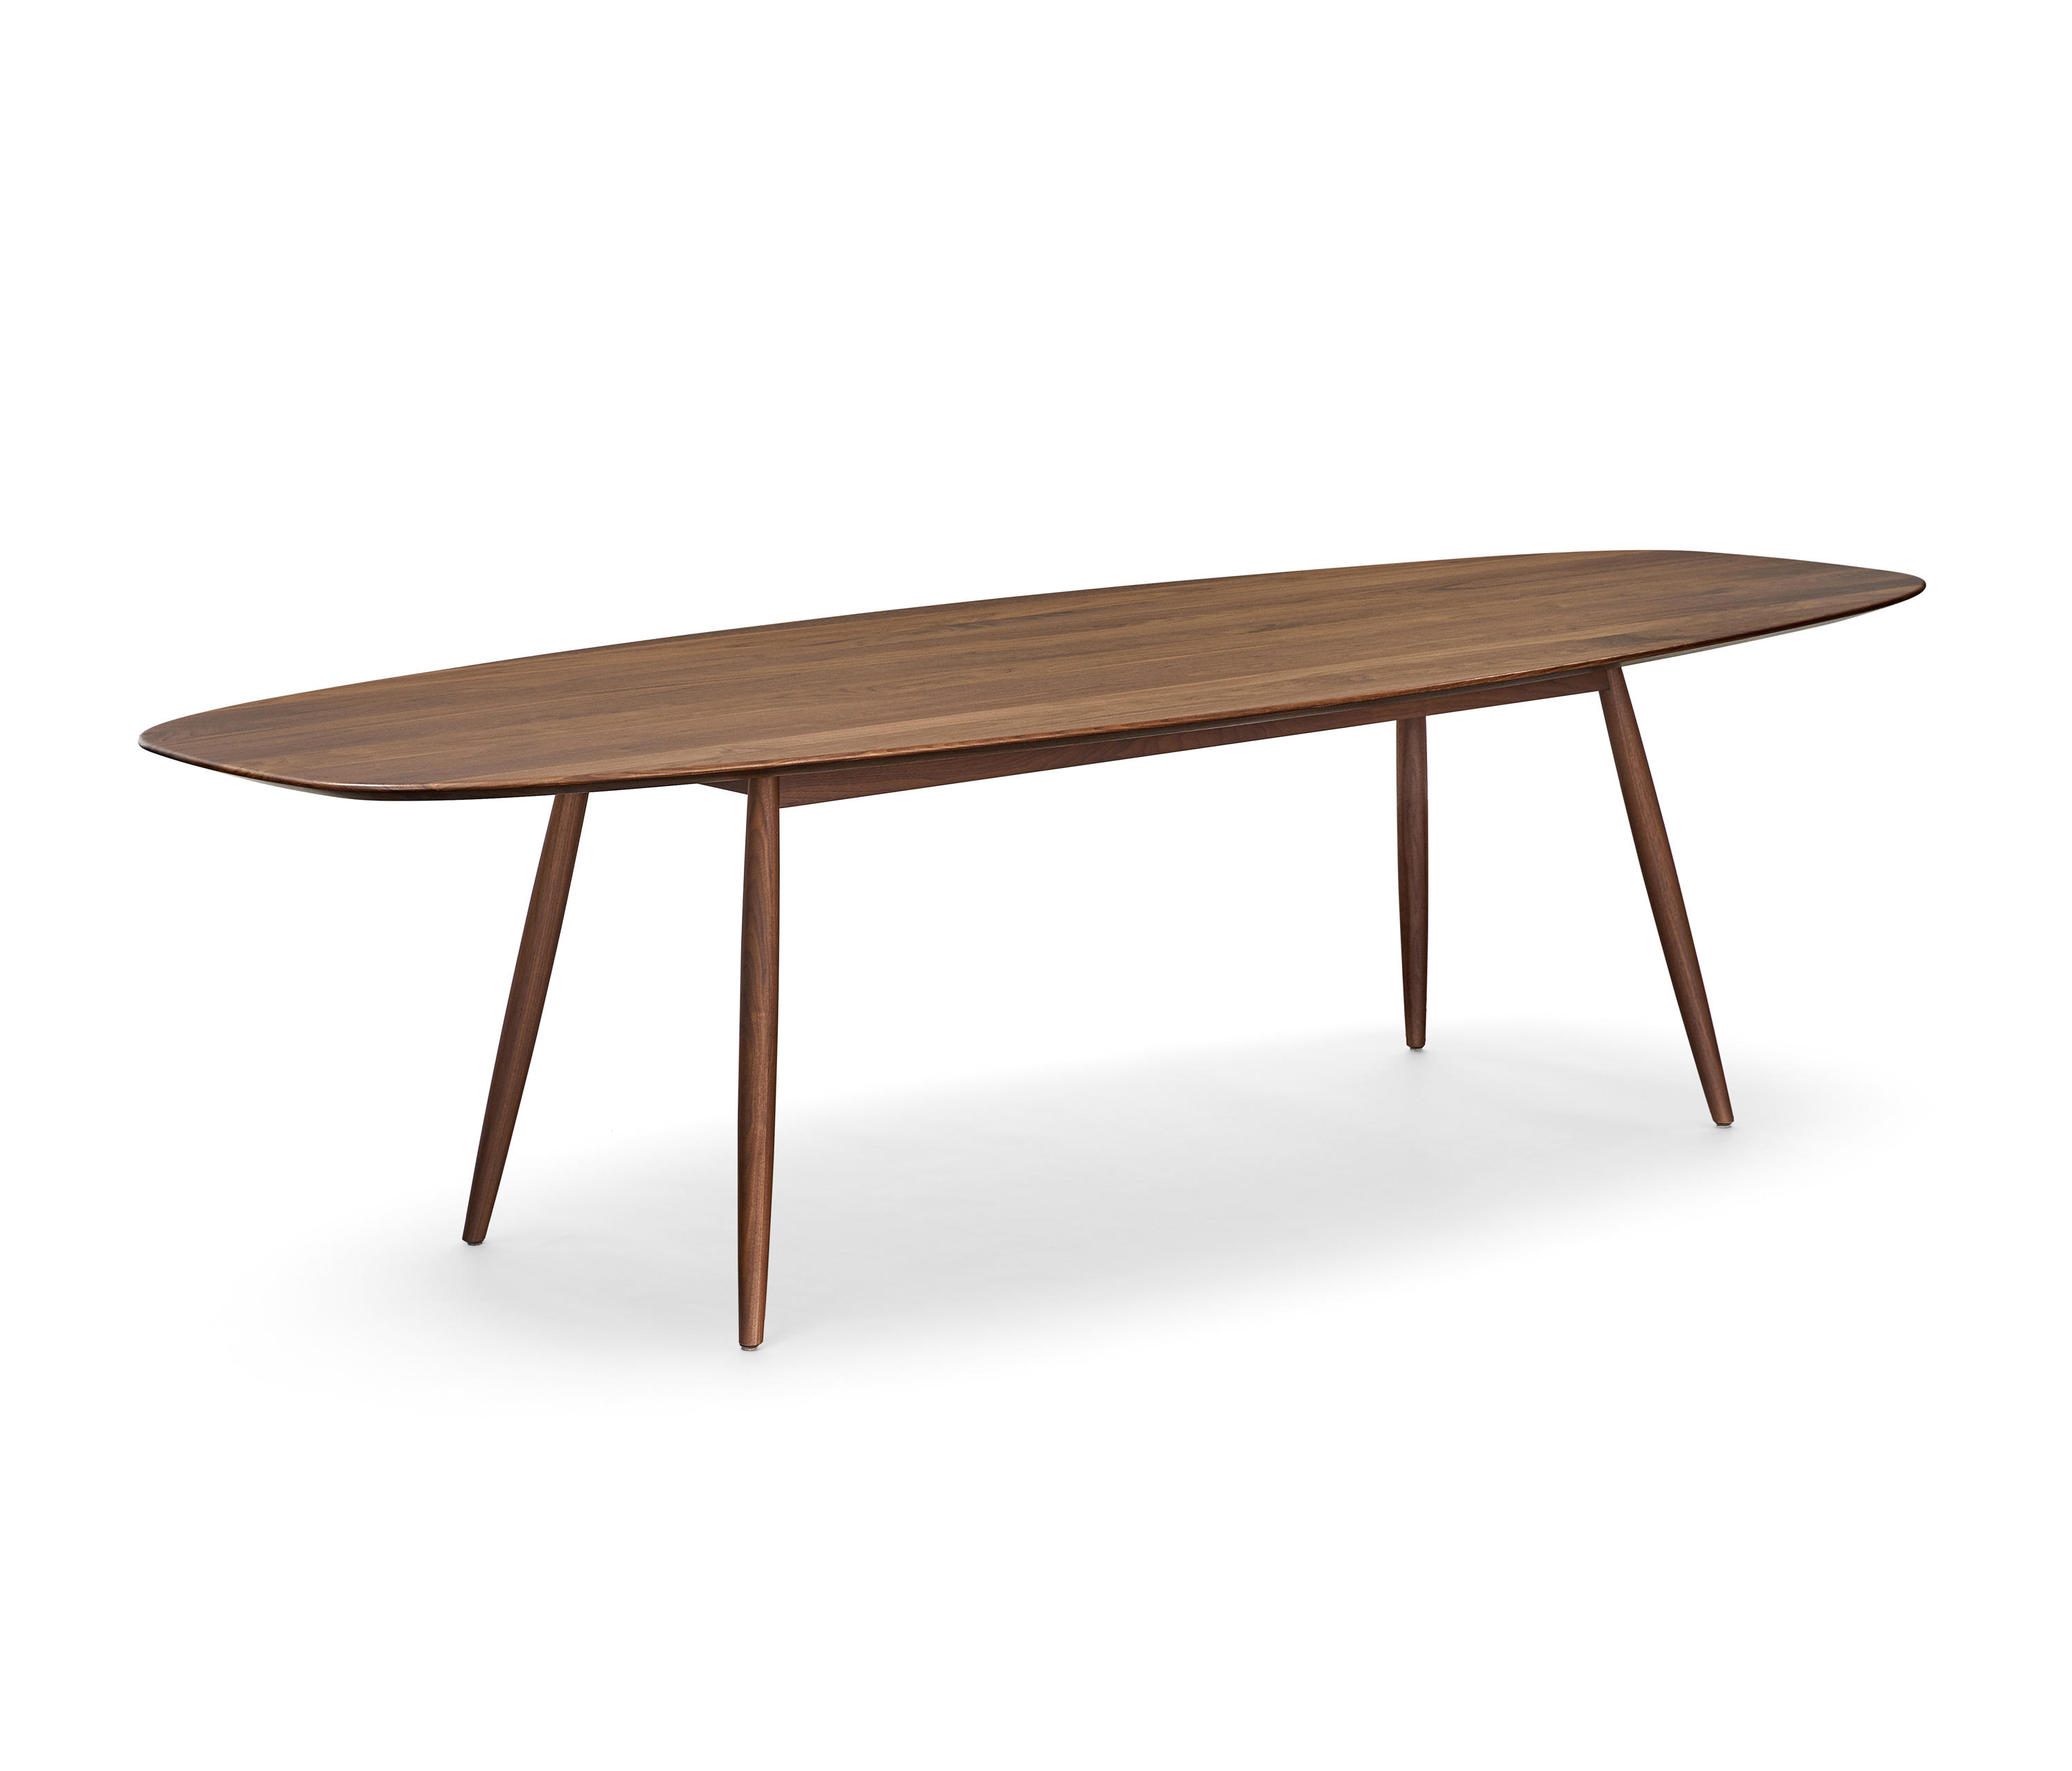 DINING TABLES WITH BOAT SHAPED TOP High quality designer DINING